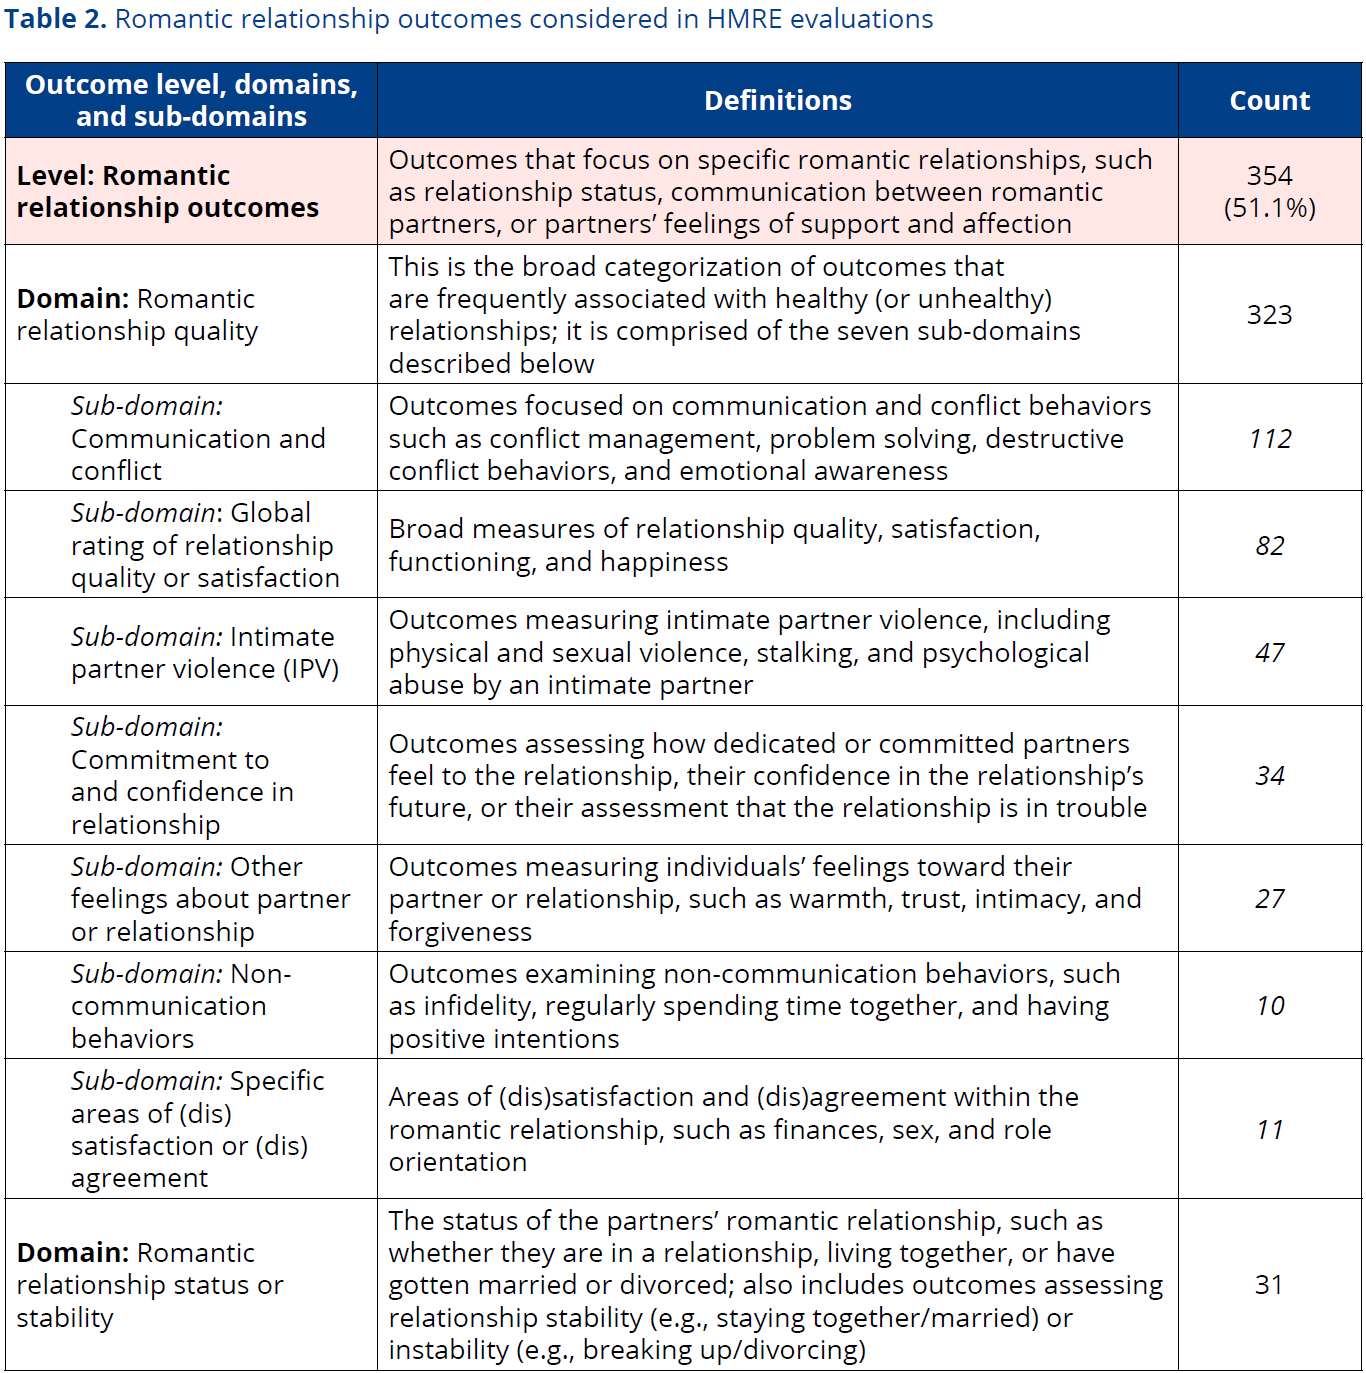 Table 2 Romantic relationship outcomes considered in HMRE evaluations